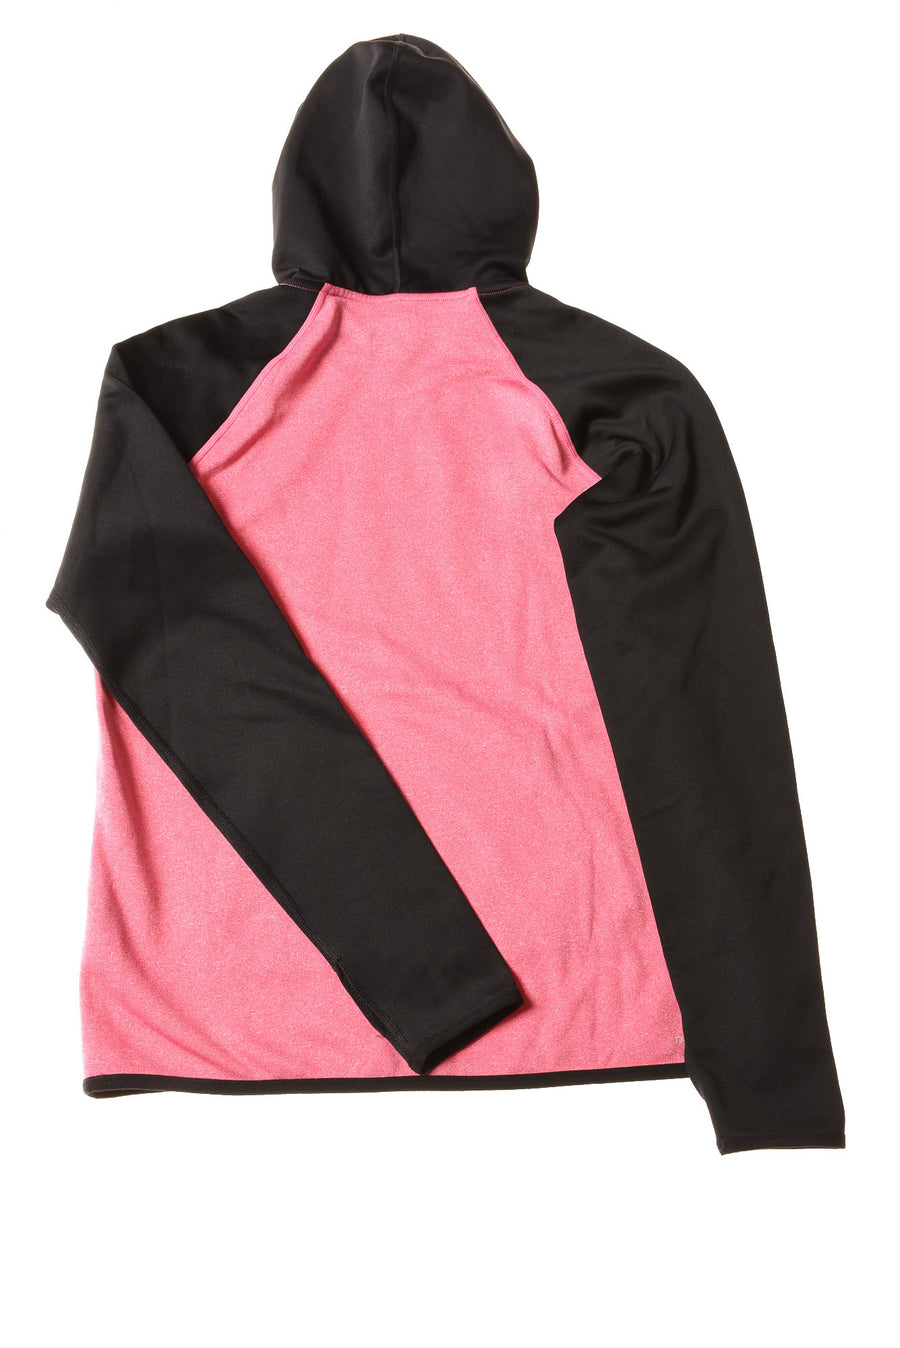 USED Nike Women's Hoodie Small Pink & Black / Print